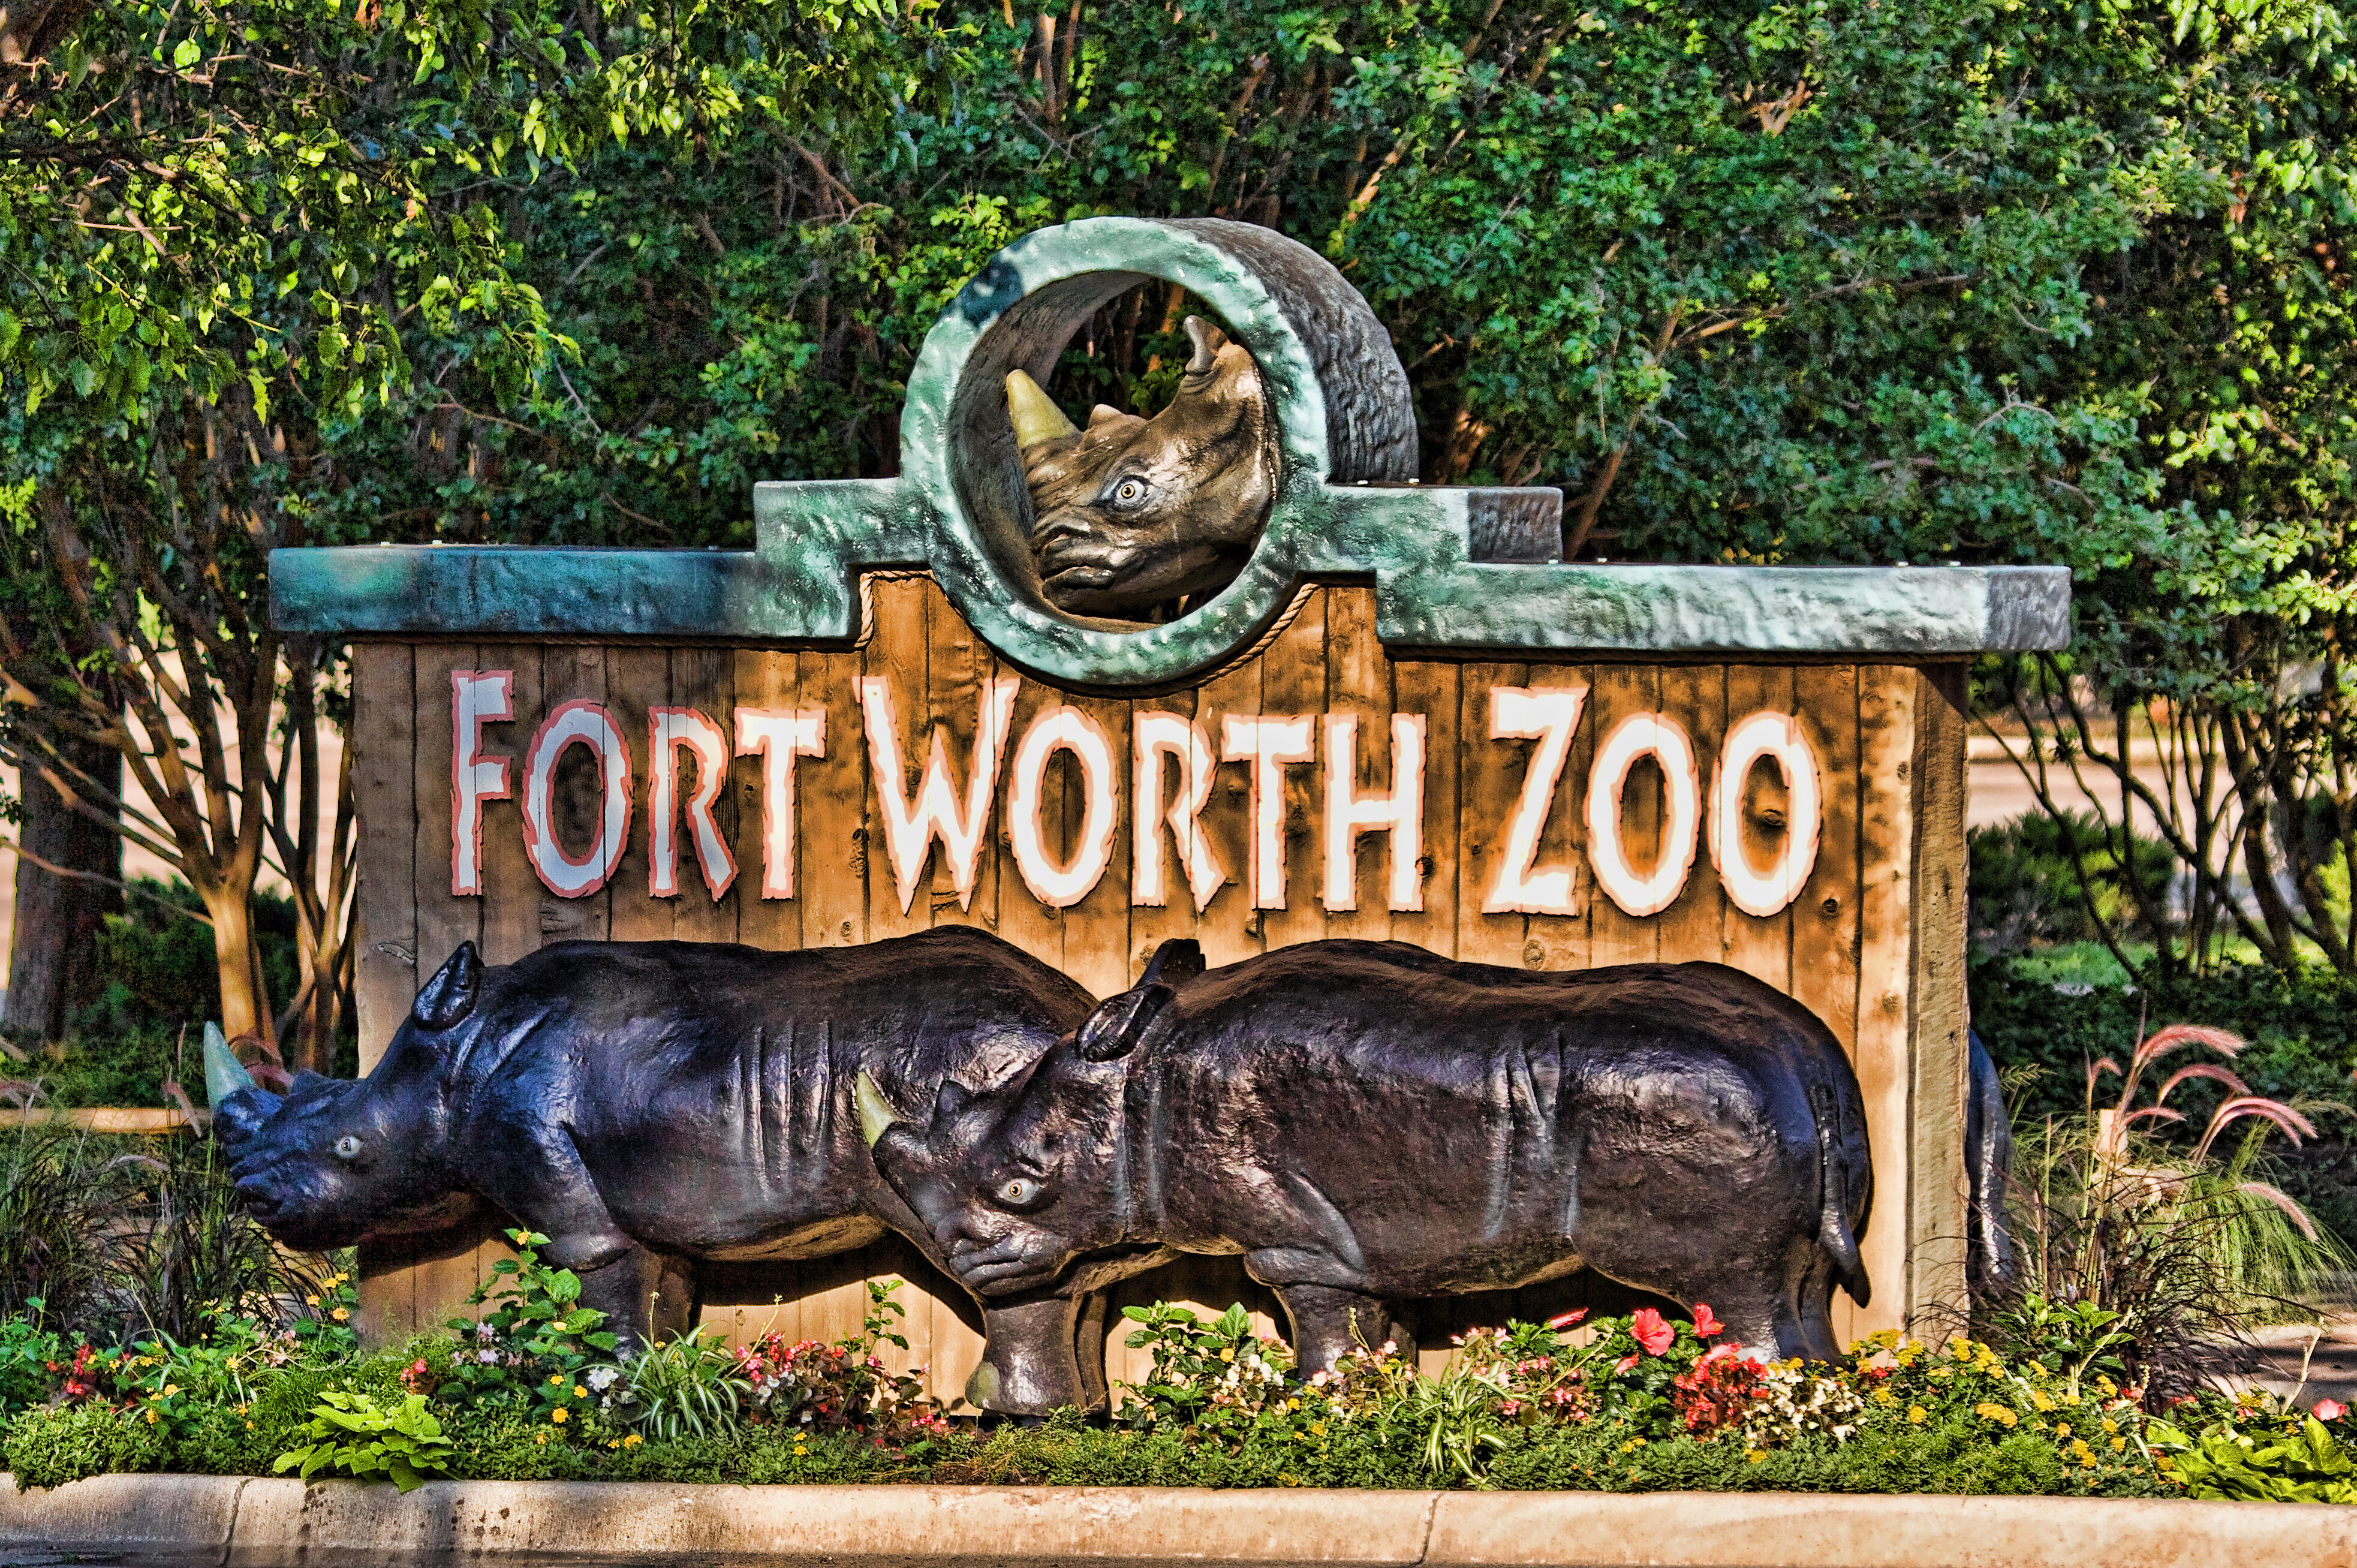 Fort Worth Zoo entrance sign